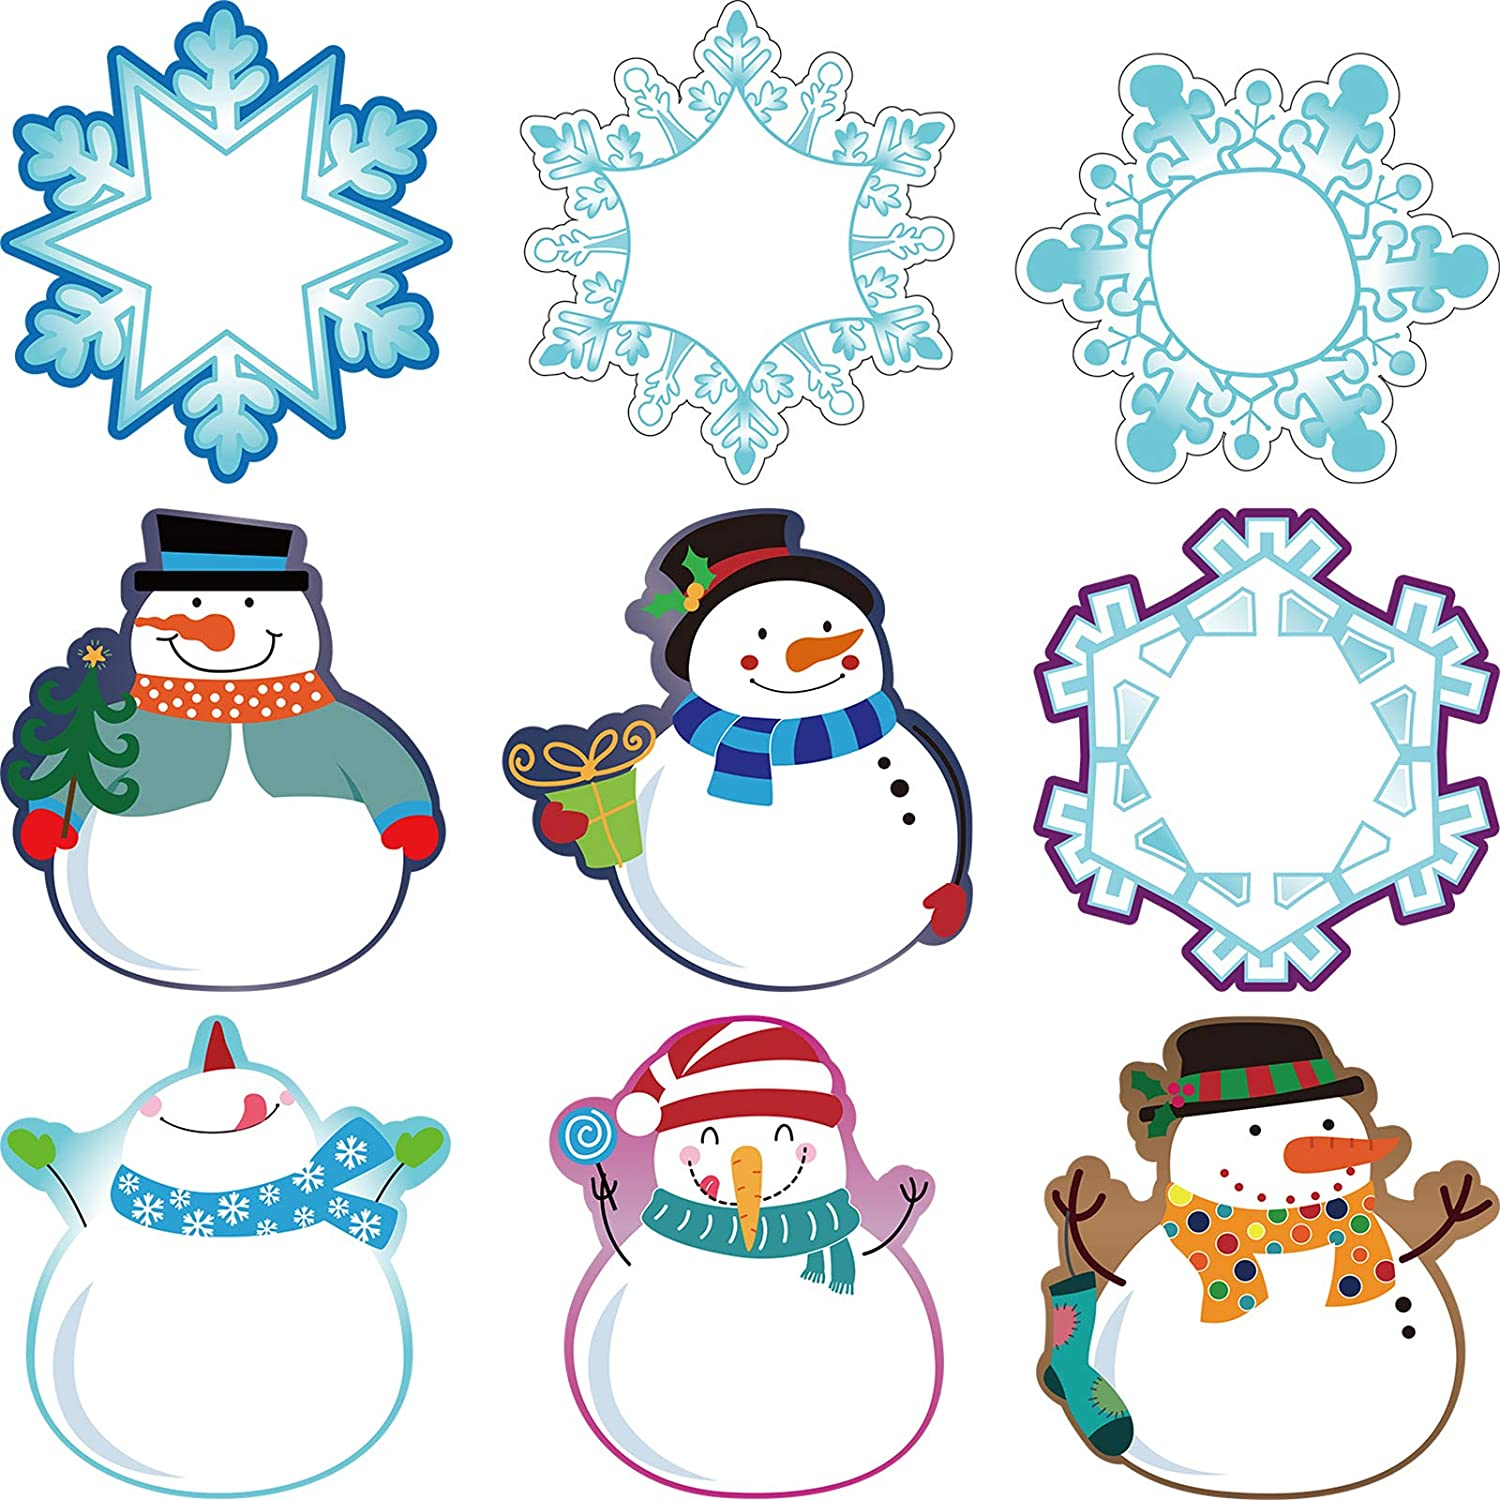 45 Pieces Colorful Winter Mix Cut-Outs Versatile Classroom Decoration Snowmen Snowflake Cutouts with Glue Point Dots for Bulletin Board School Christmas Winter Theme Party, 5.9 x 5.9 Inch